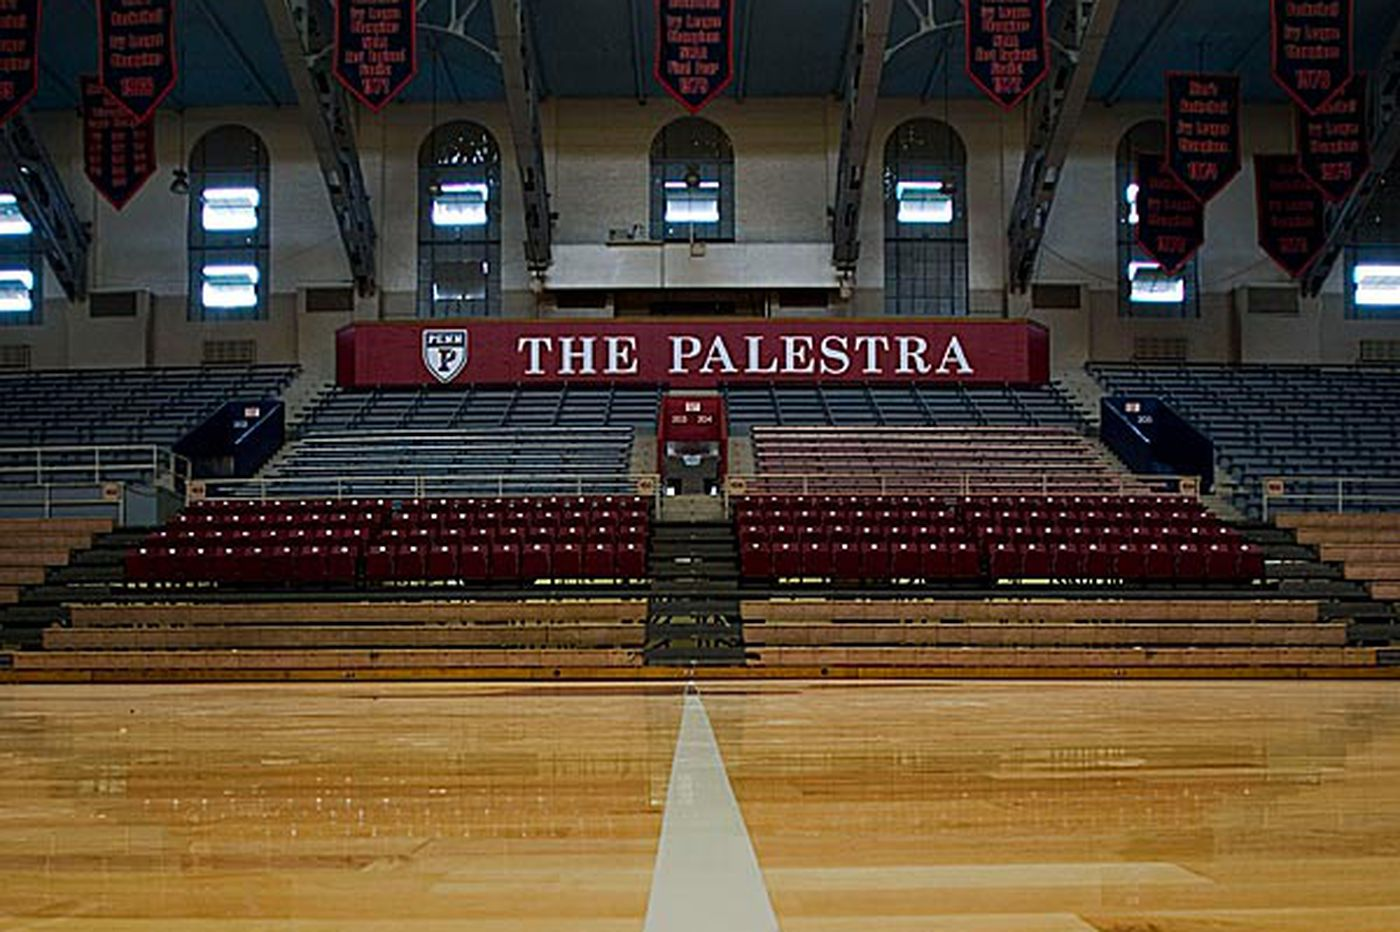 Let's put all Big 5 games back where they belong - in the Palestra